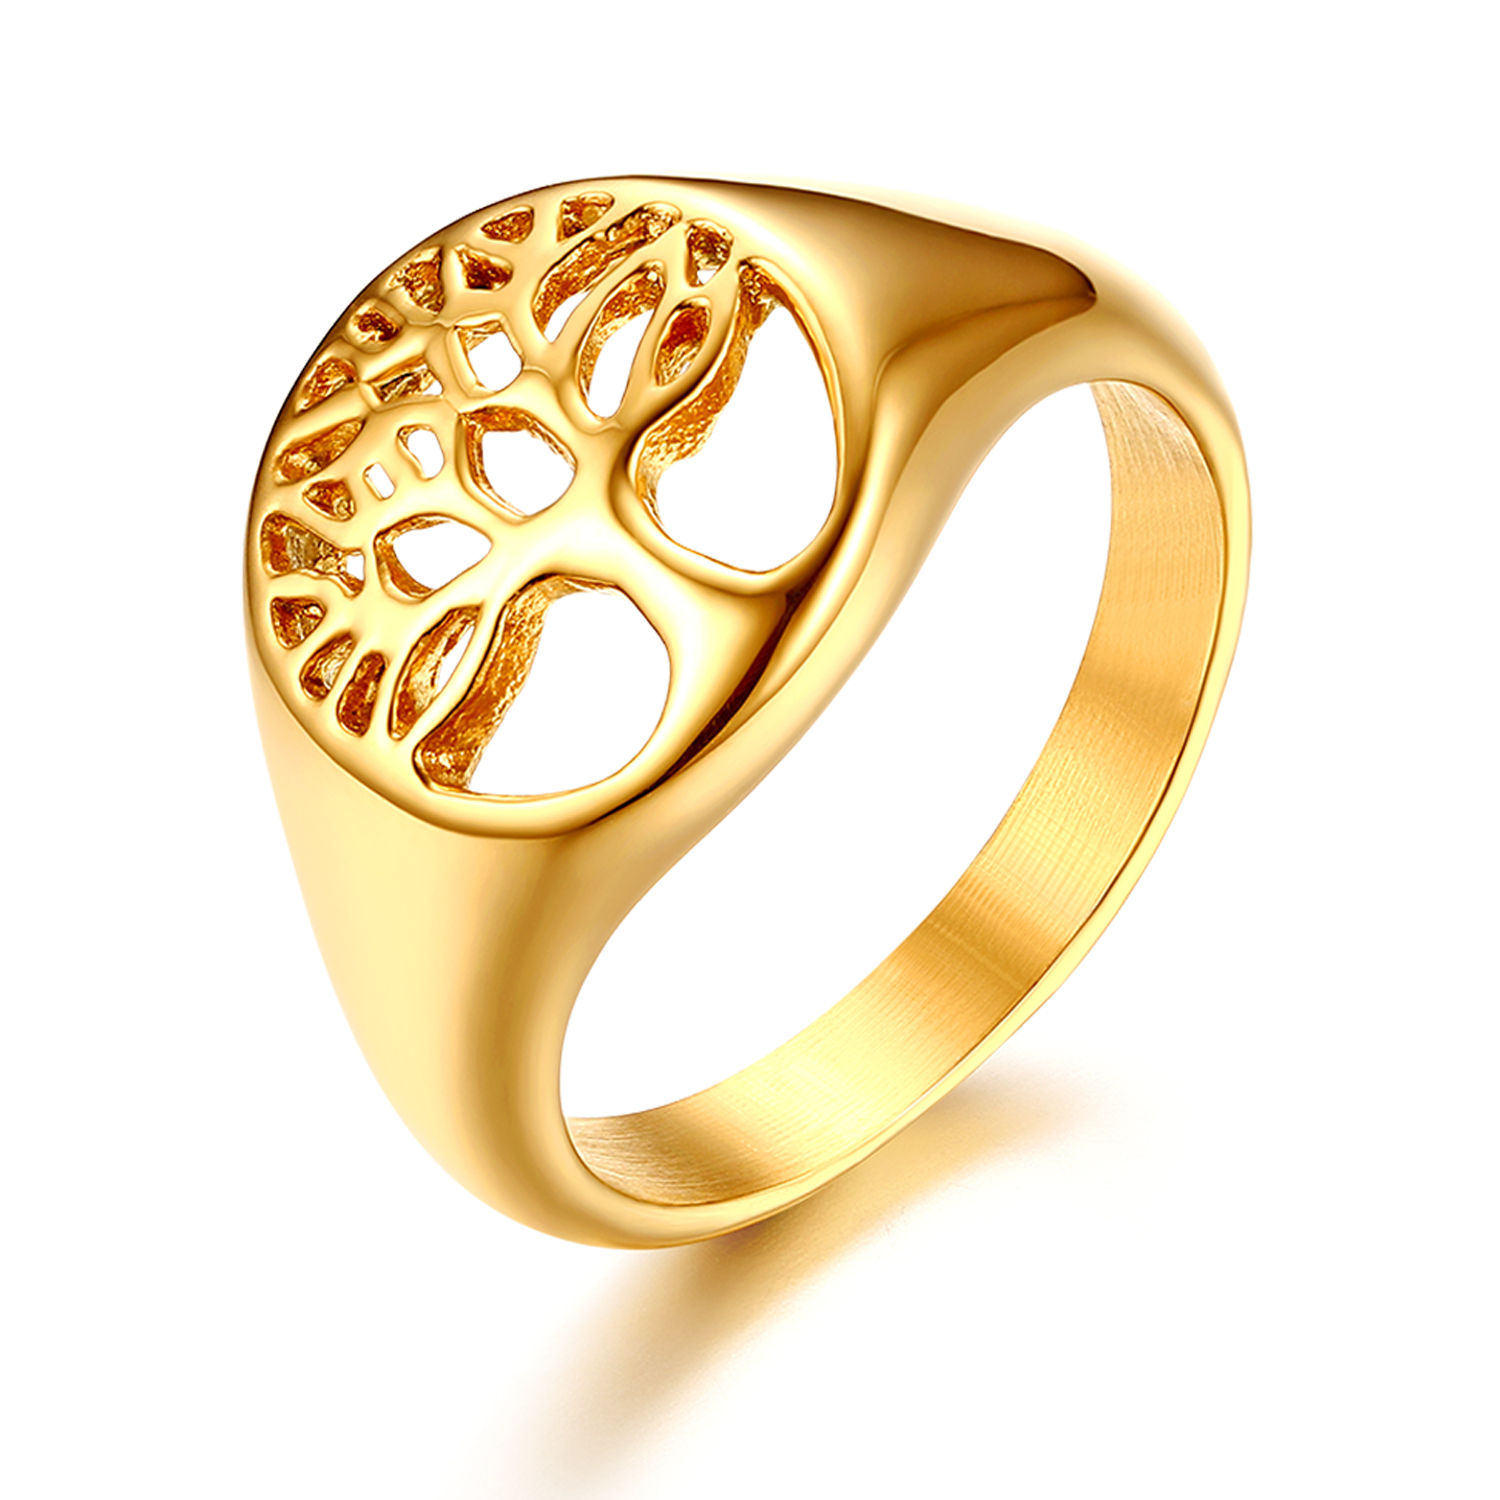 Fashion jewelry Gold Silver plated Women Men/'s Stainless steel rhinestone rings